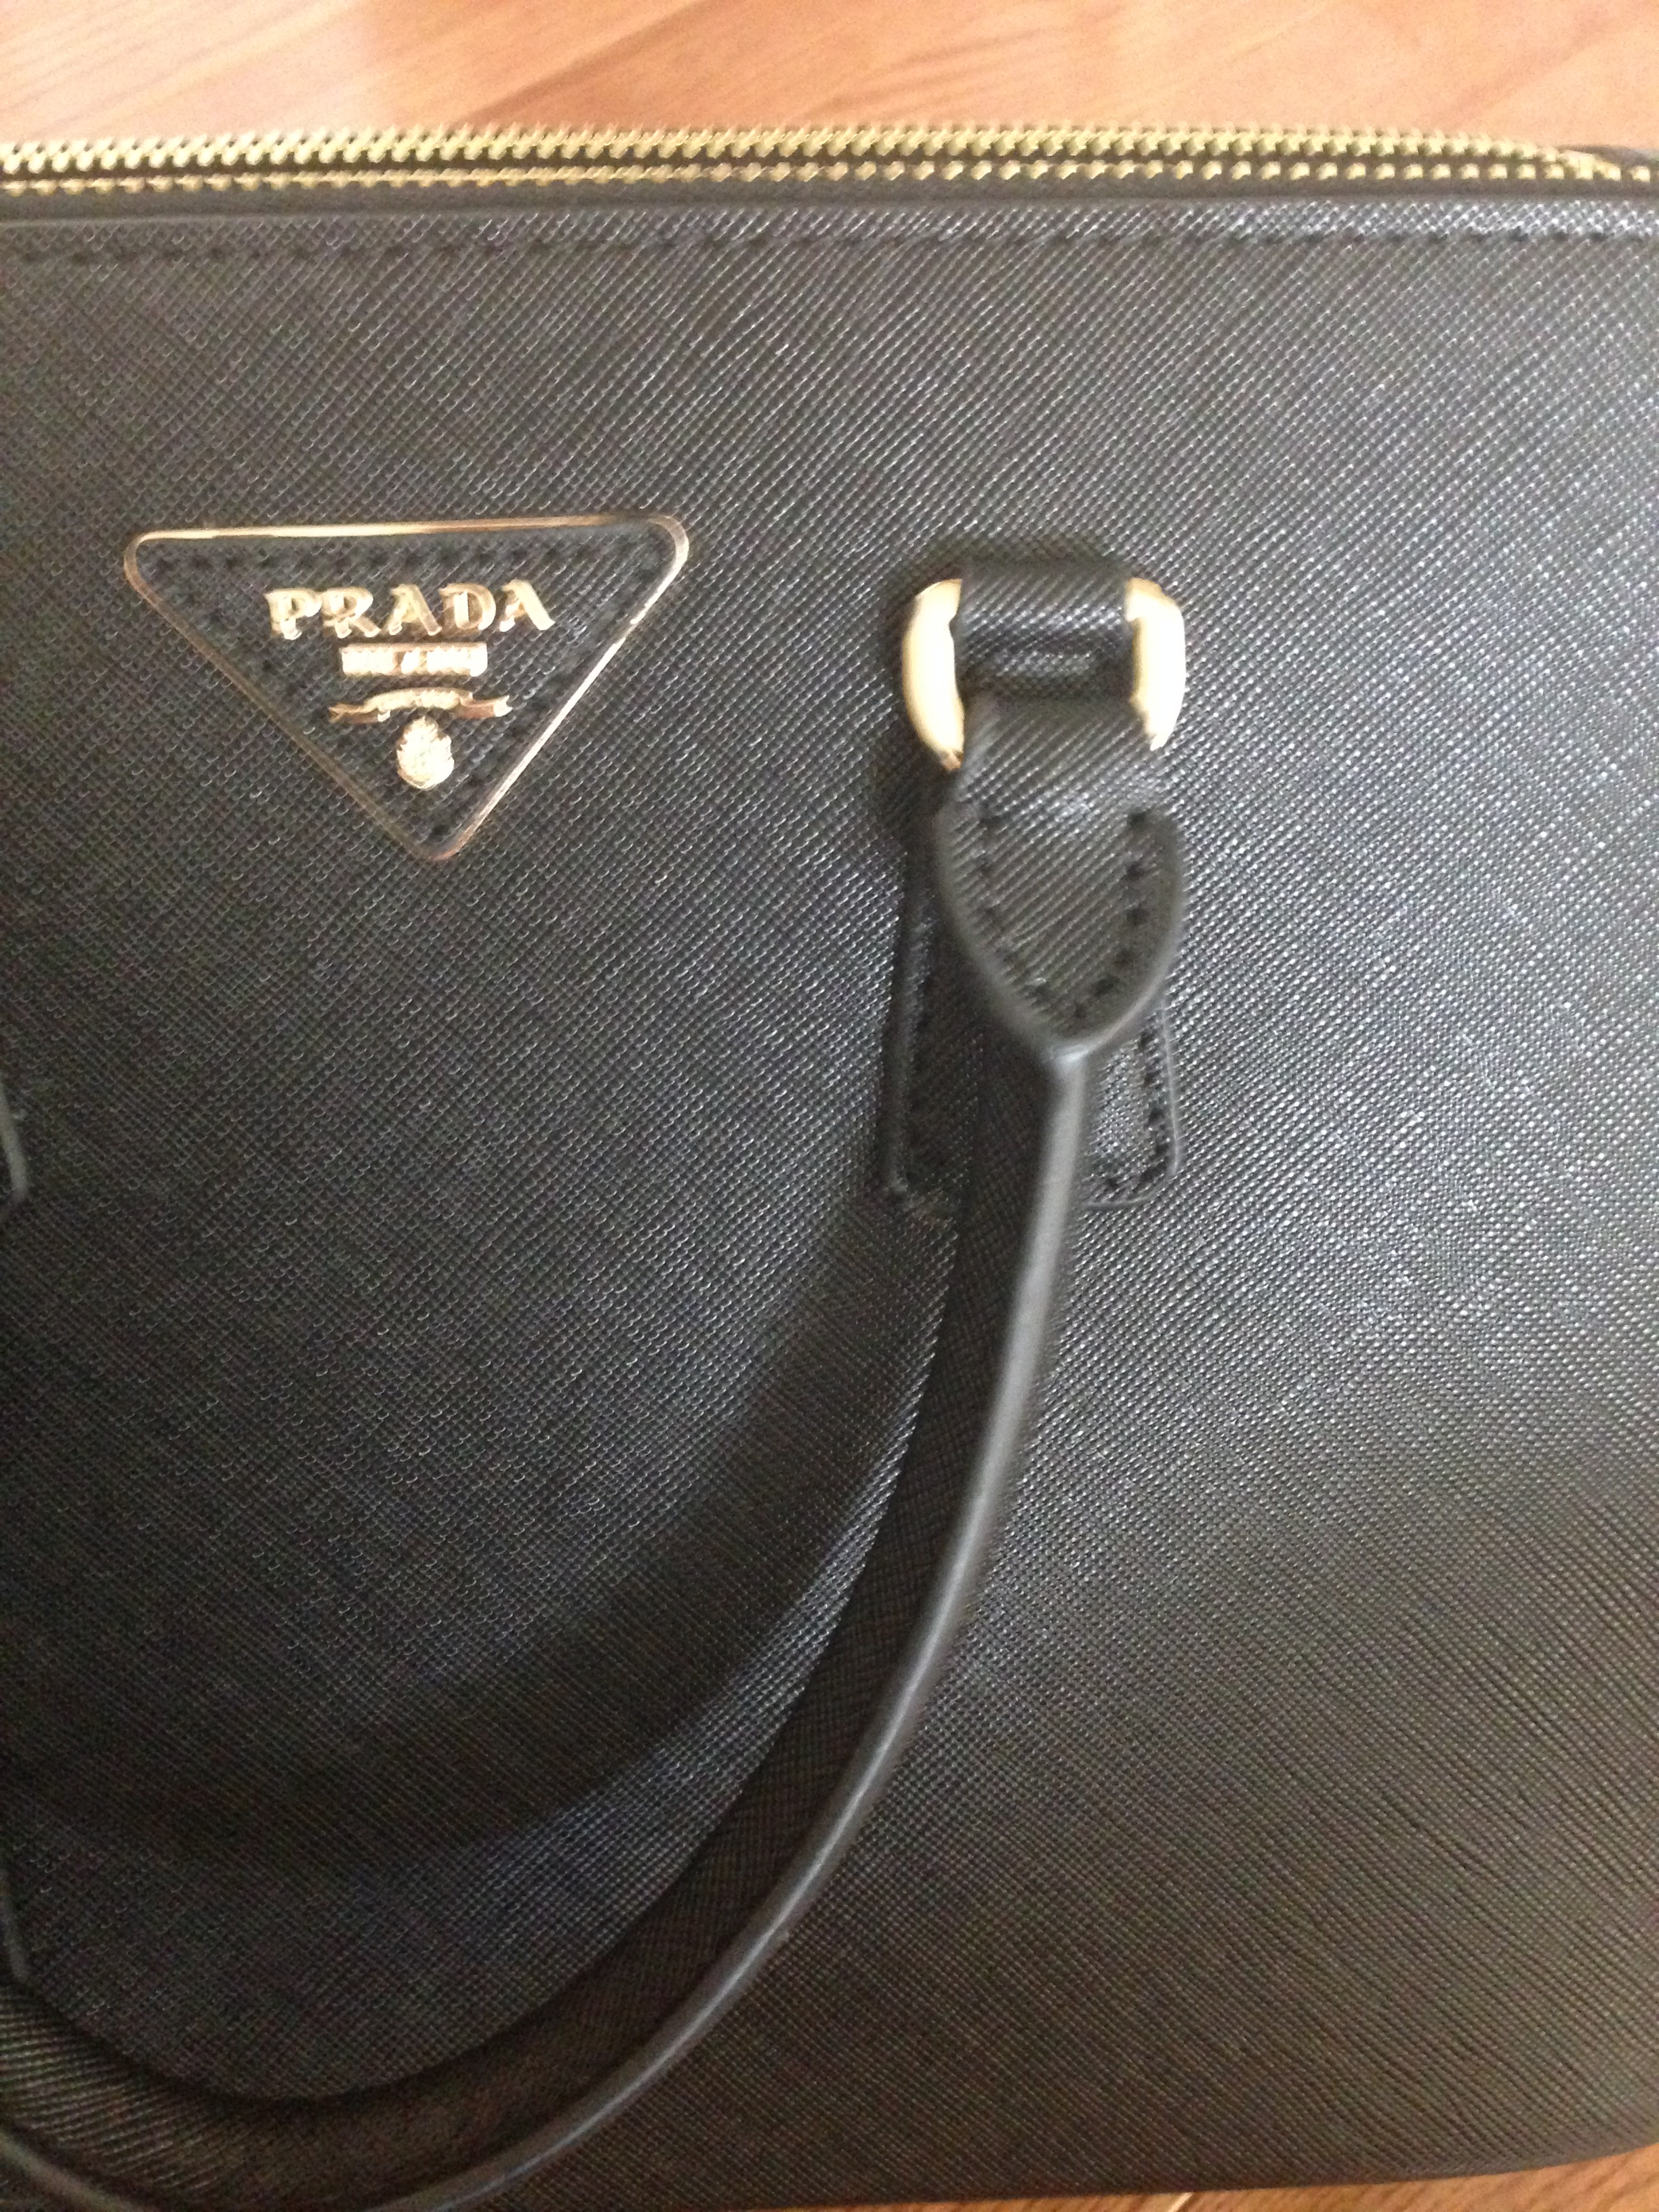 fake prada briefcase